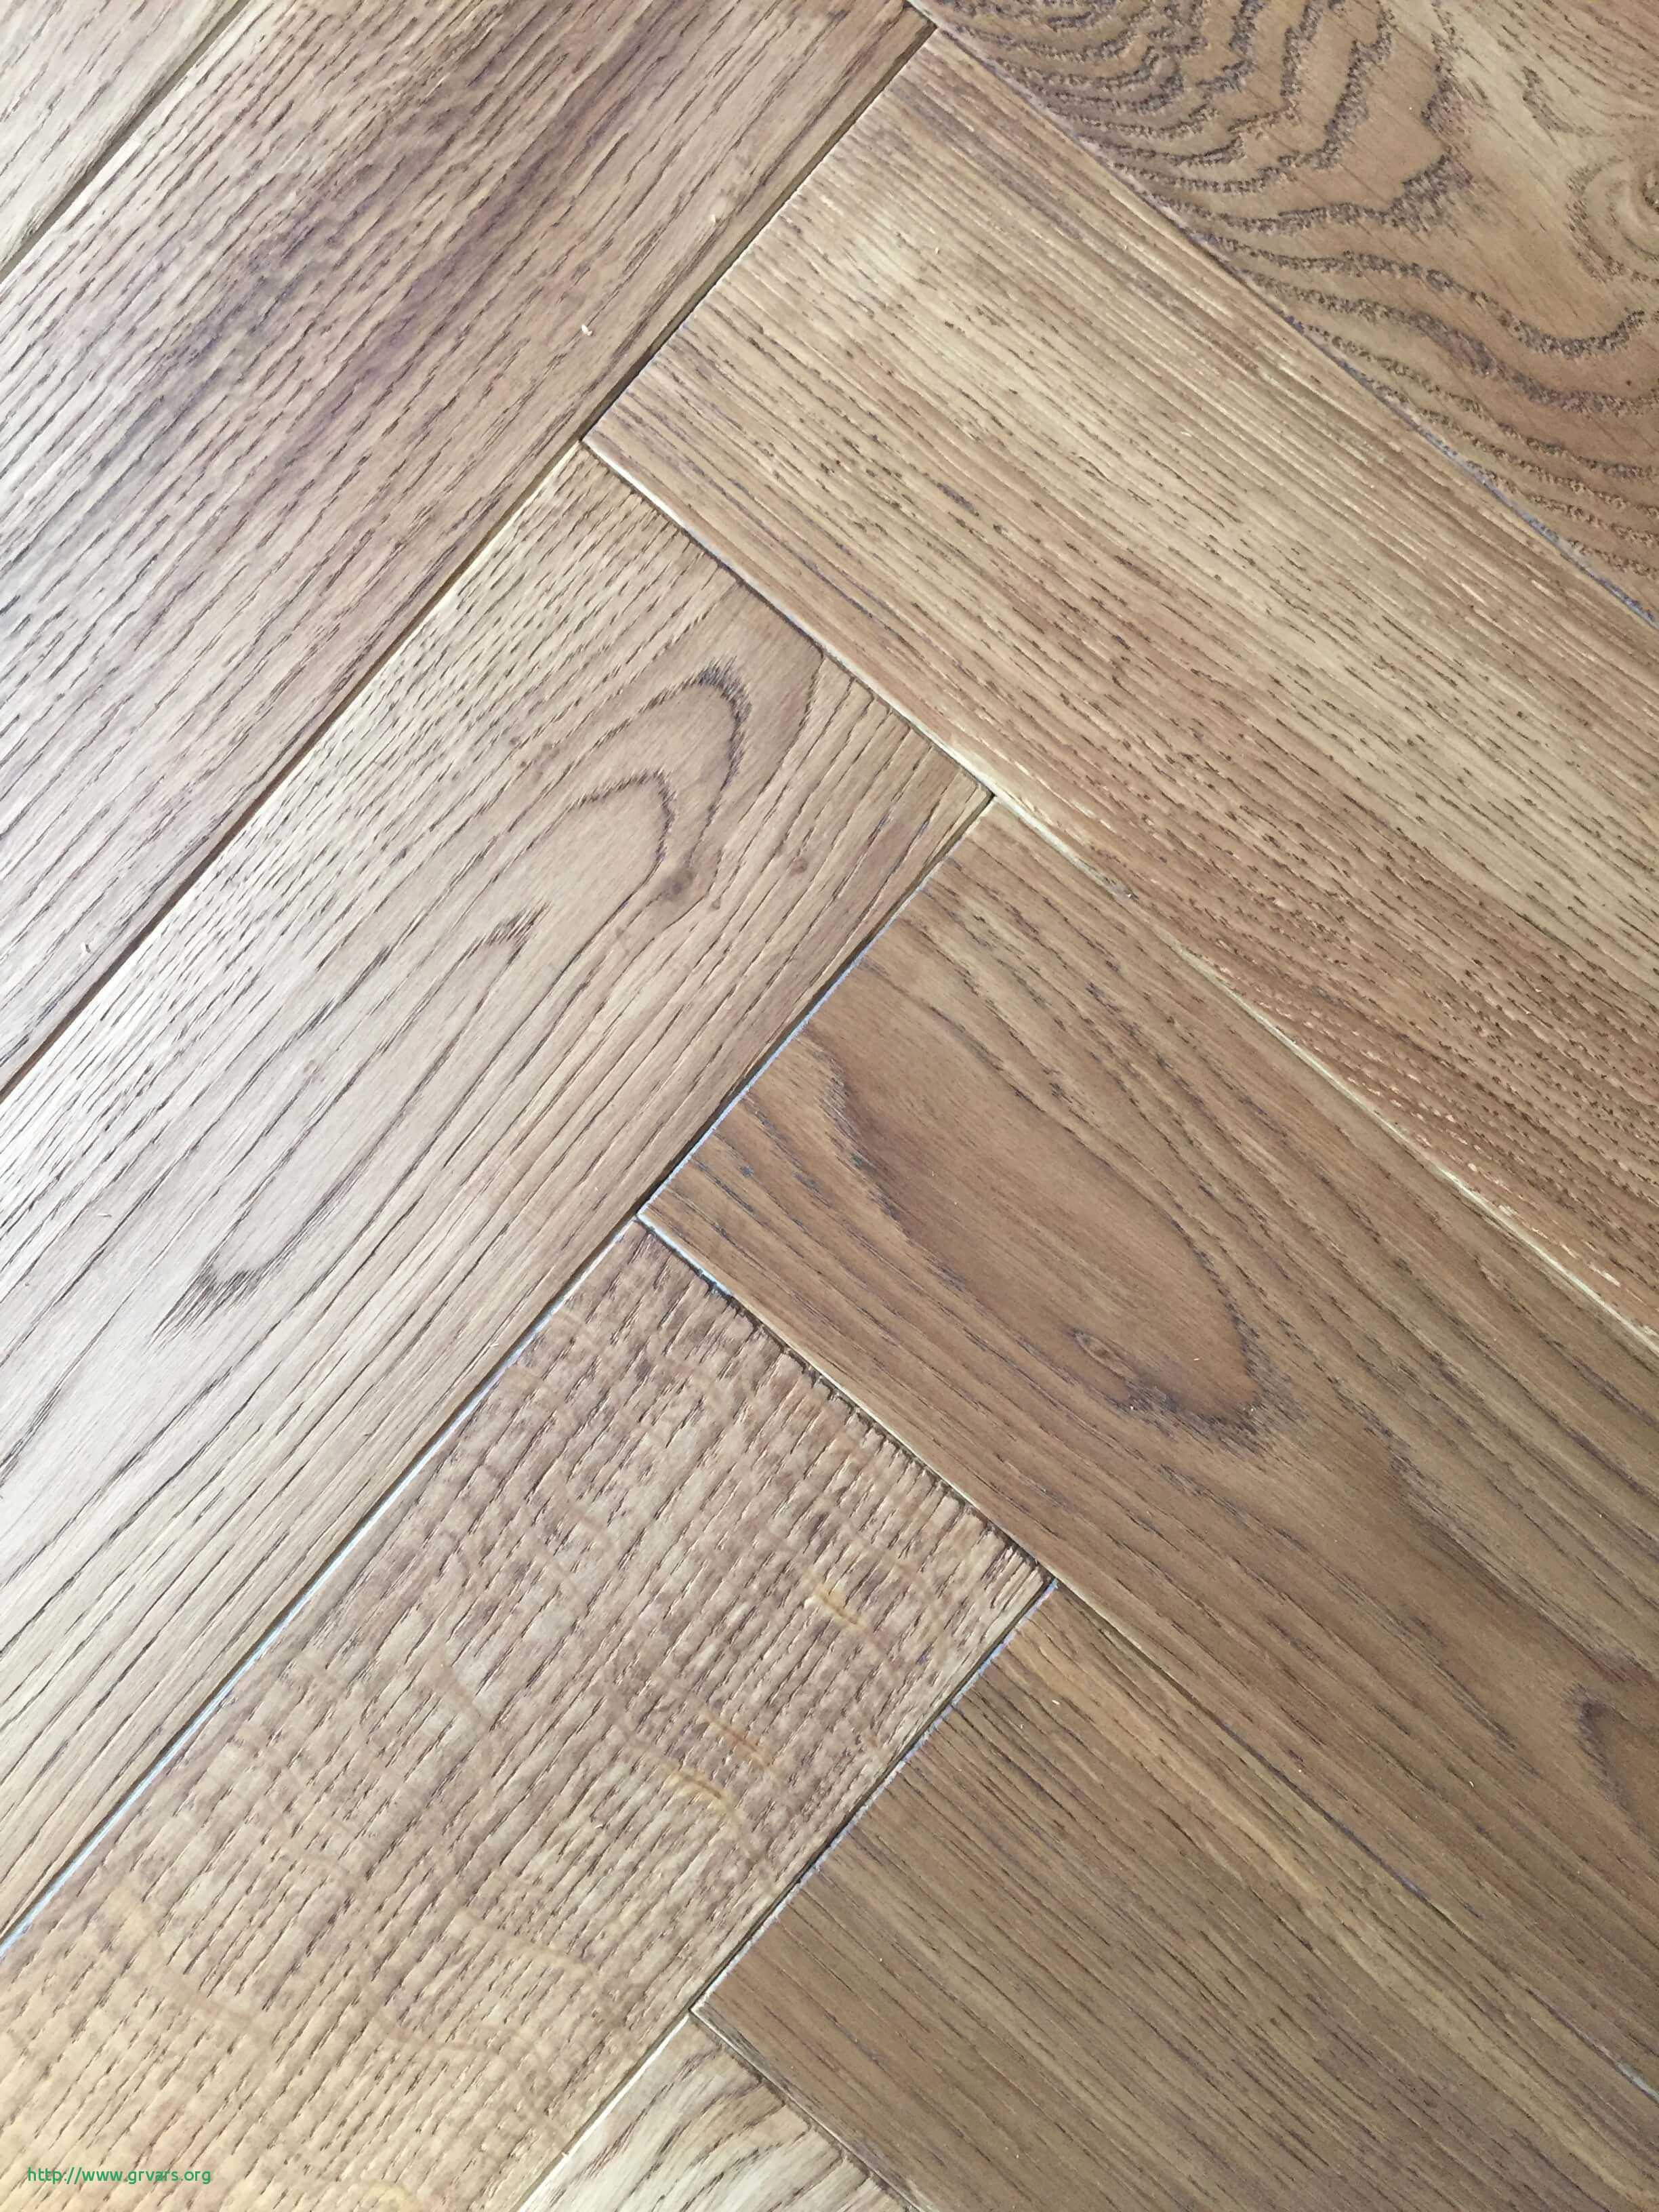 what tools are needed to install hardwood flooring of 21 unique pattern for laying hardwood flooring ideas blog intended for laying laminate flooring new decorating an open floor plan living room awesome design plan 0d